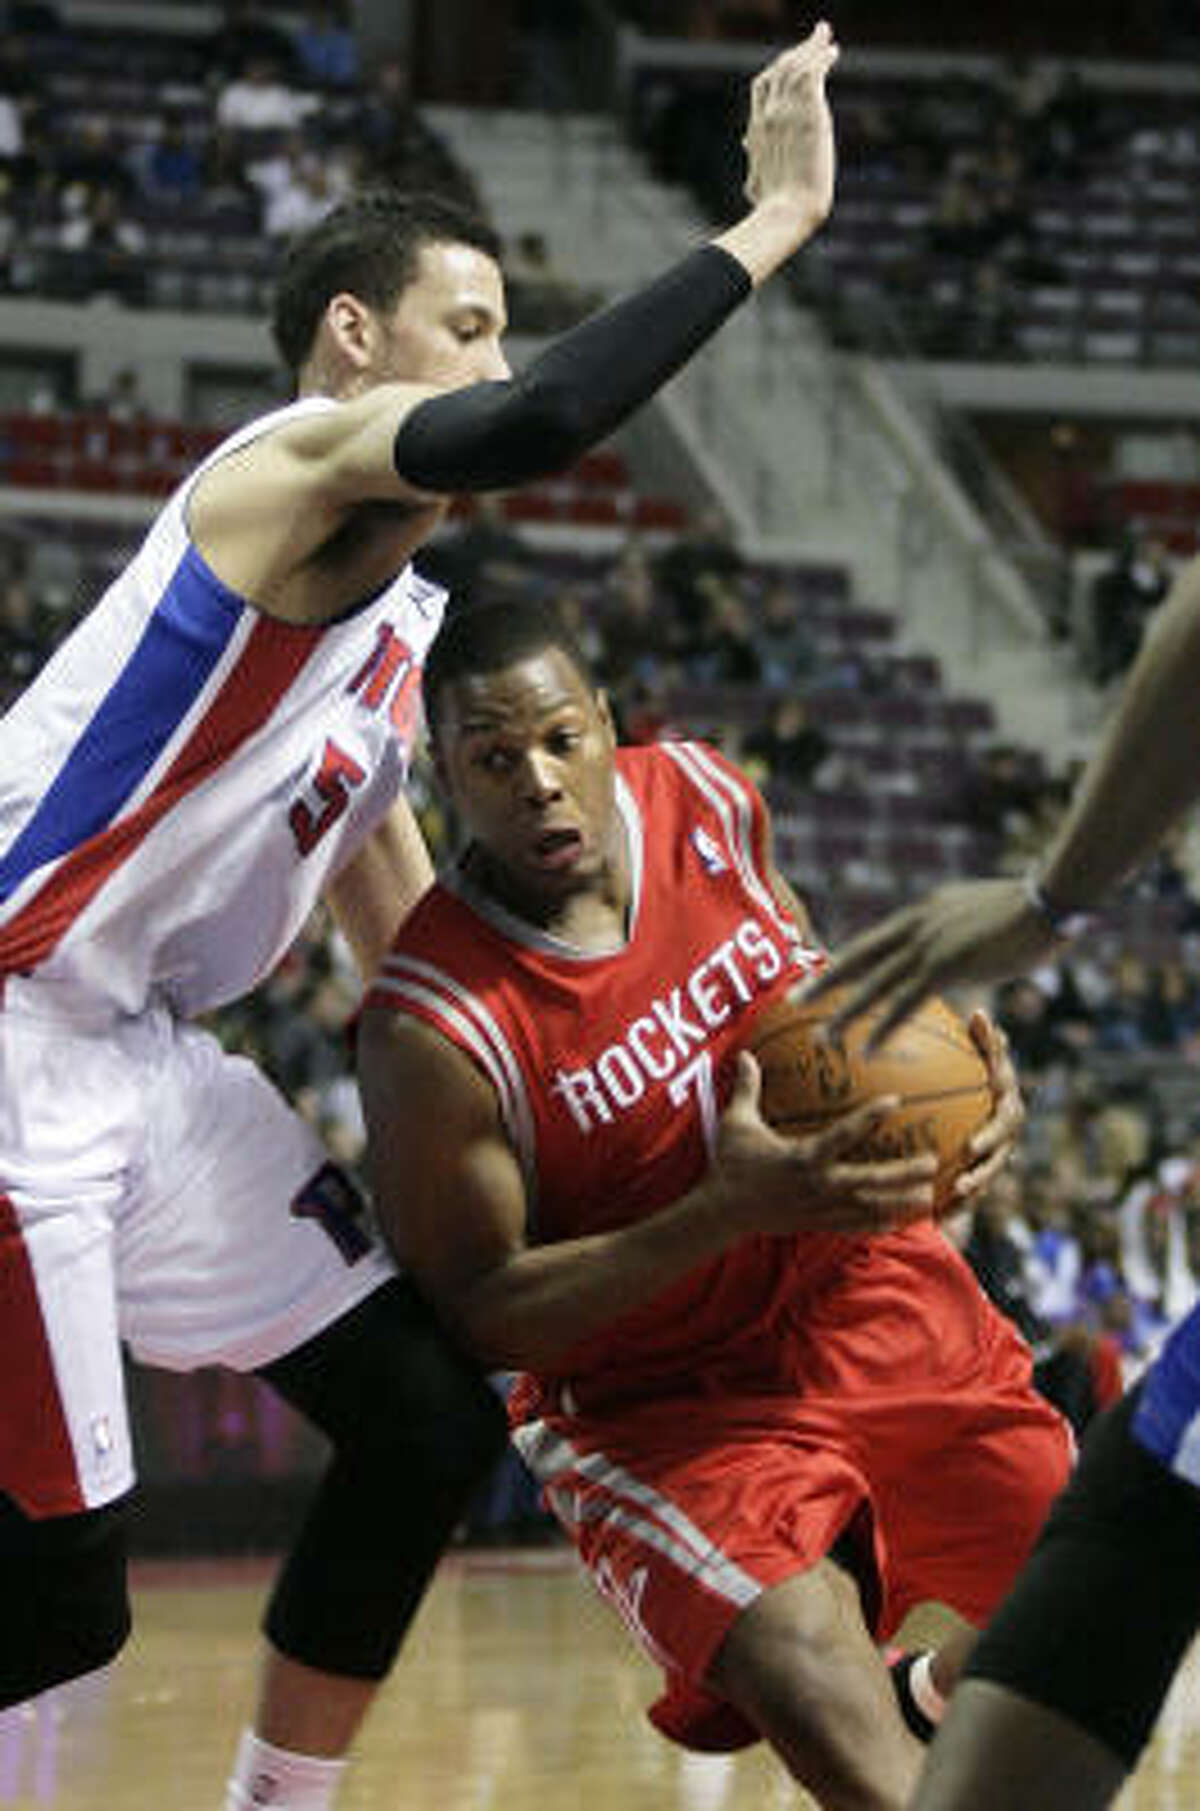 Rockets guard Kyle Lowry drives to the basket against Pistons forward Austin Daye in the first half.